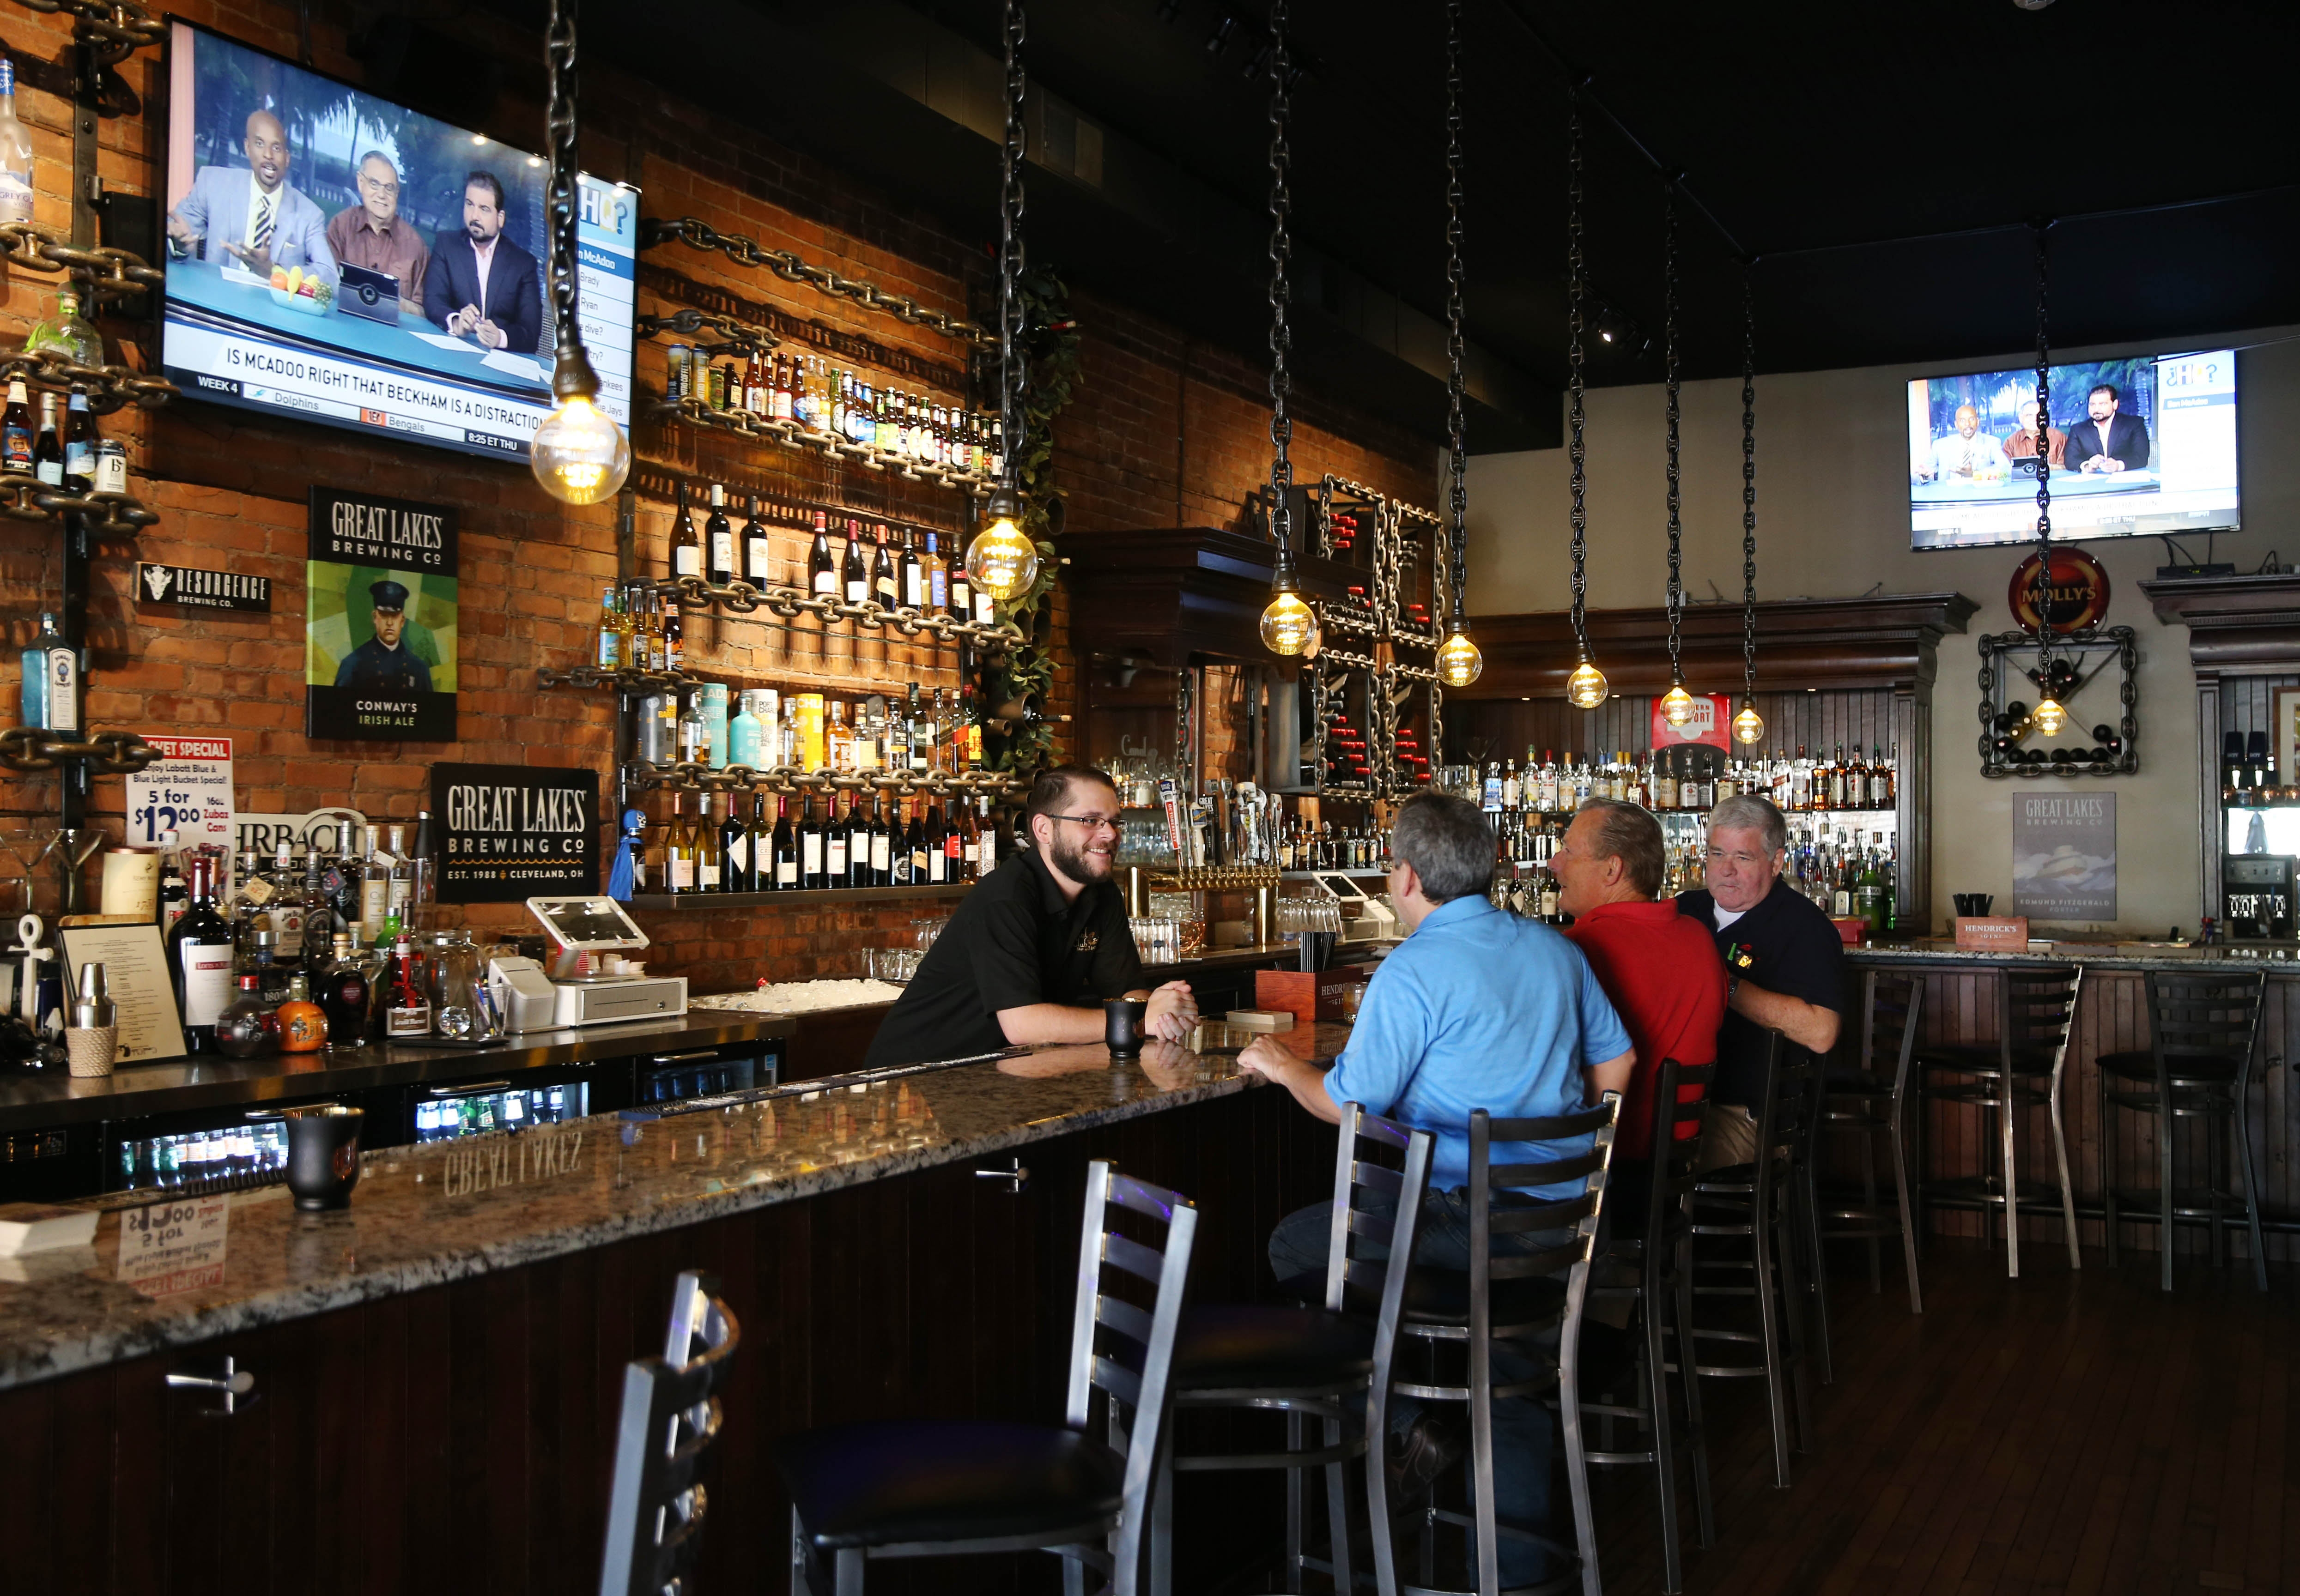 Canal Club 62 Tap and Eatery Restaurant opened at 62 Webster Street in North Tonawanda in March.   Bartender Sean Lasky serves customers.  Photo taken, Tuesday, Sept. 27, 2016.  (Sharon Cantillon/Buffalo News)